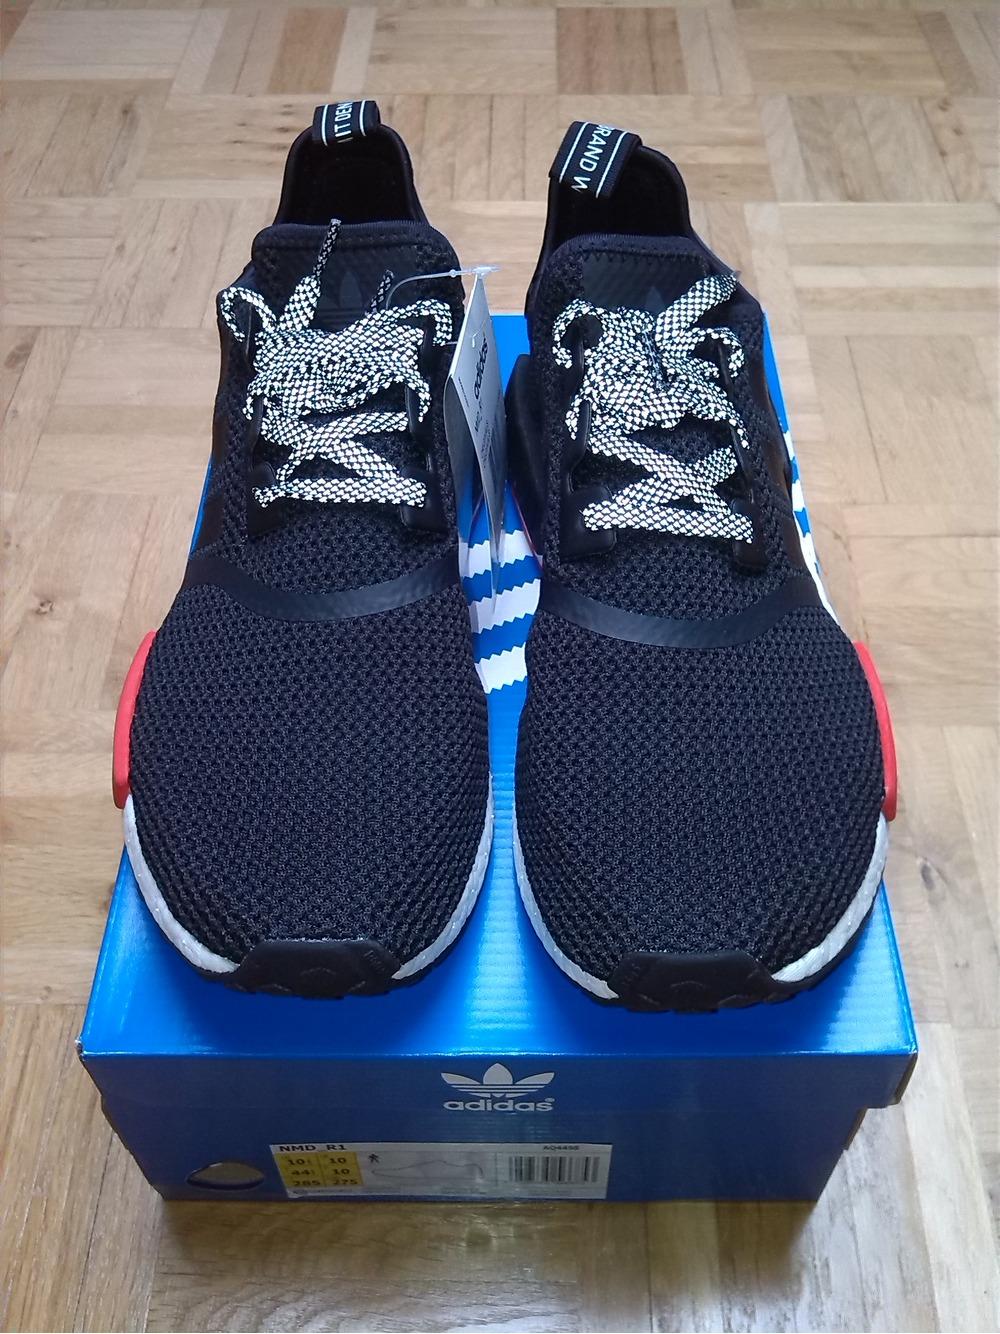 premium selection 8782b a3d93 ... best price adidas nmd pink footlocker. adidas nmd pink footlocker  1413875 klekt adidas nmd runner